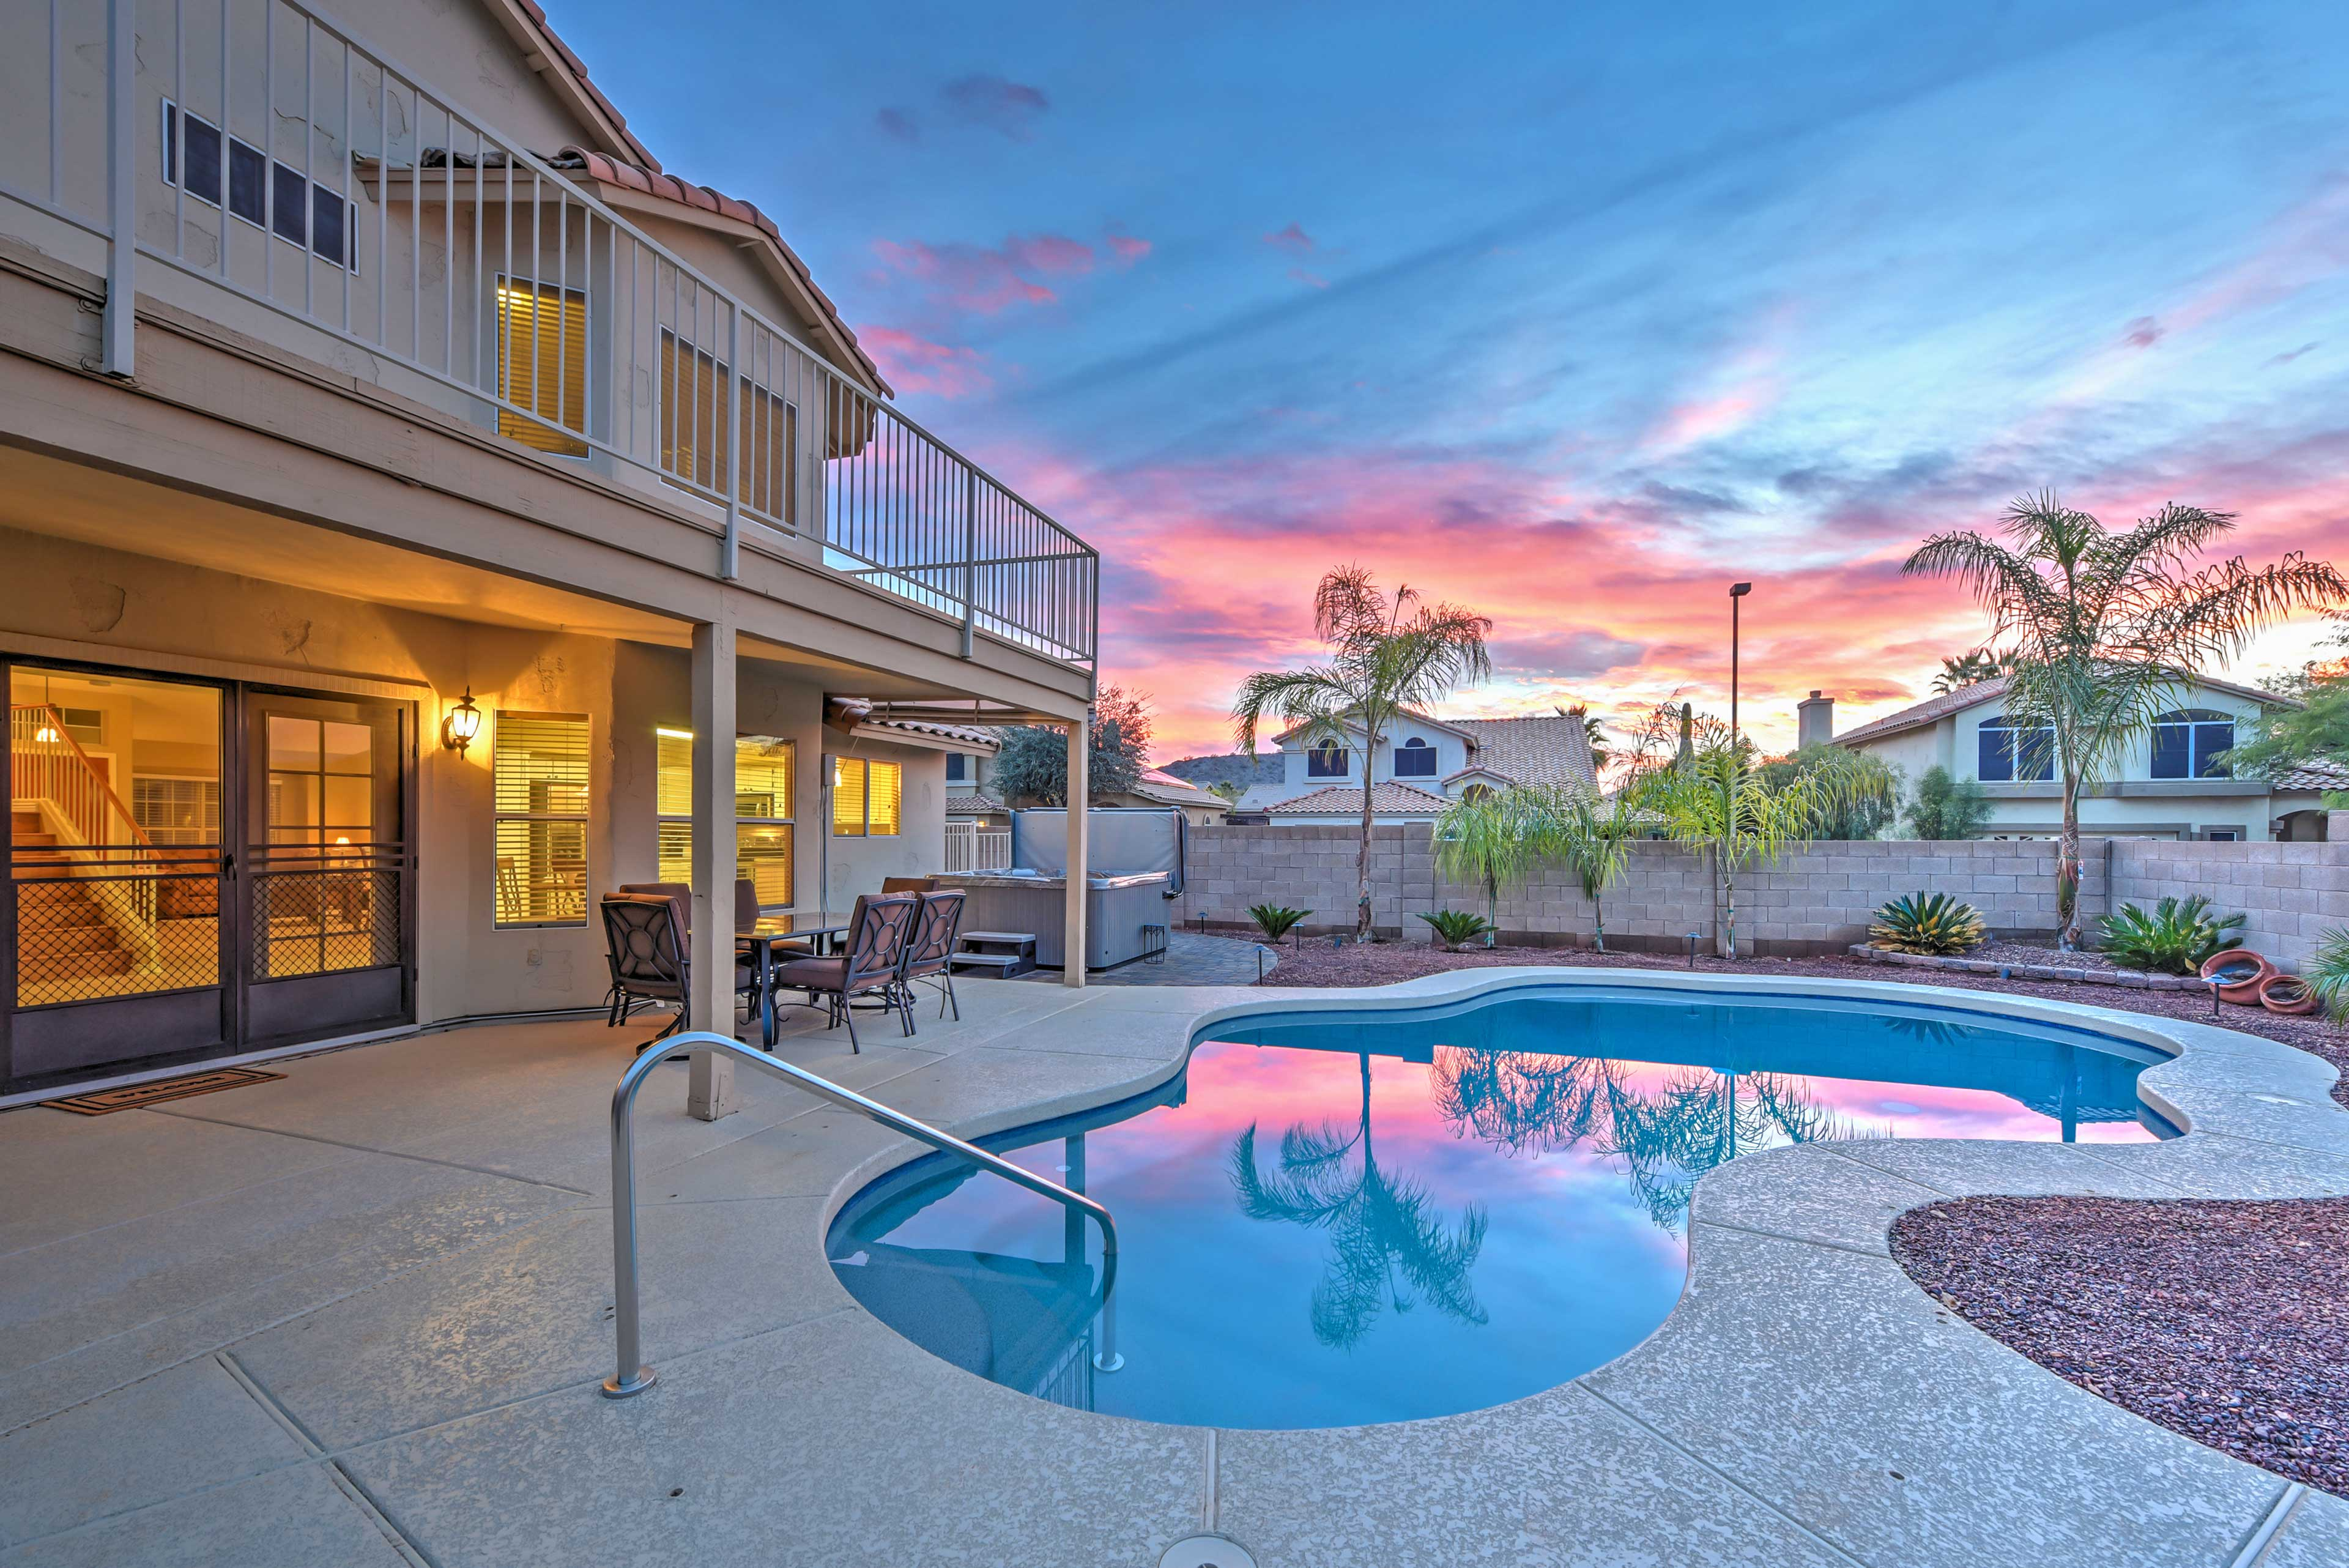 Escape to your own personal oasis in the backyard of this Goodyear vacation rental.